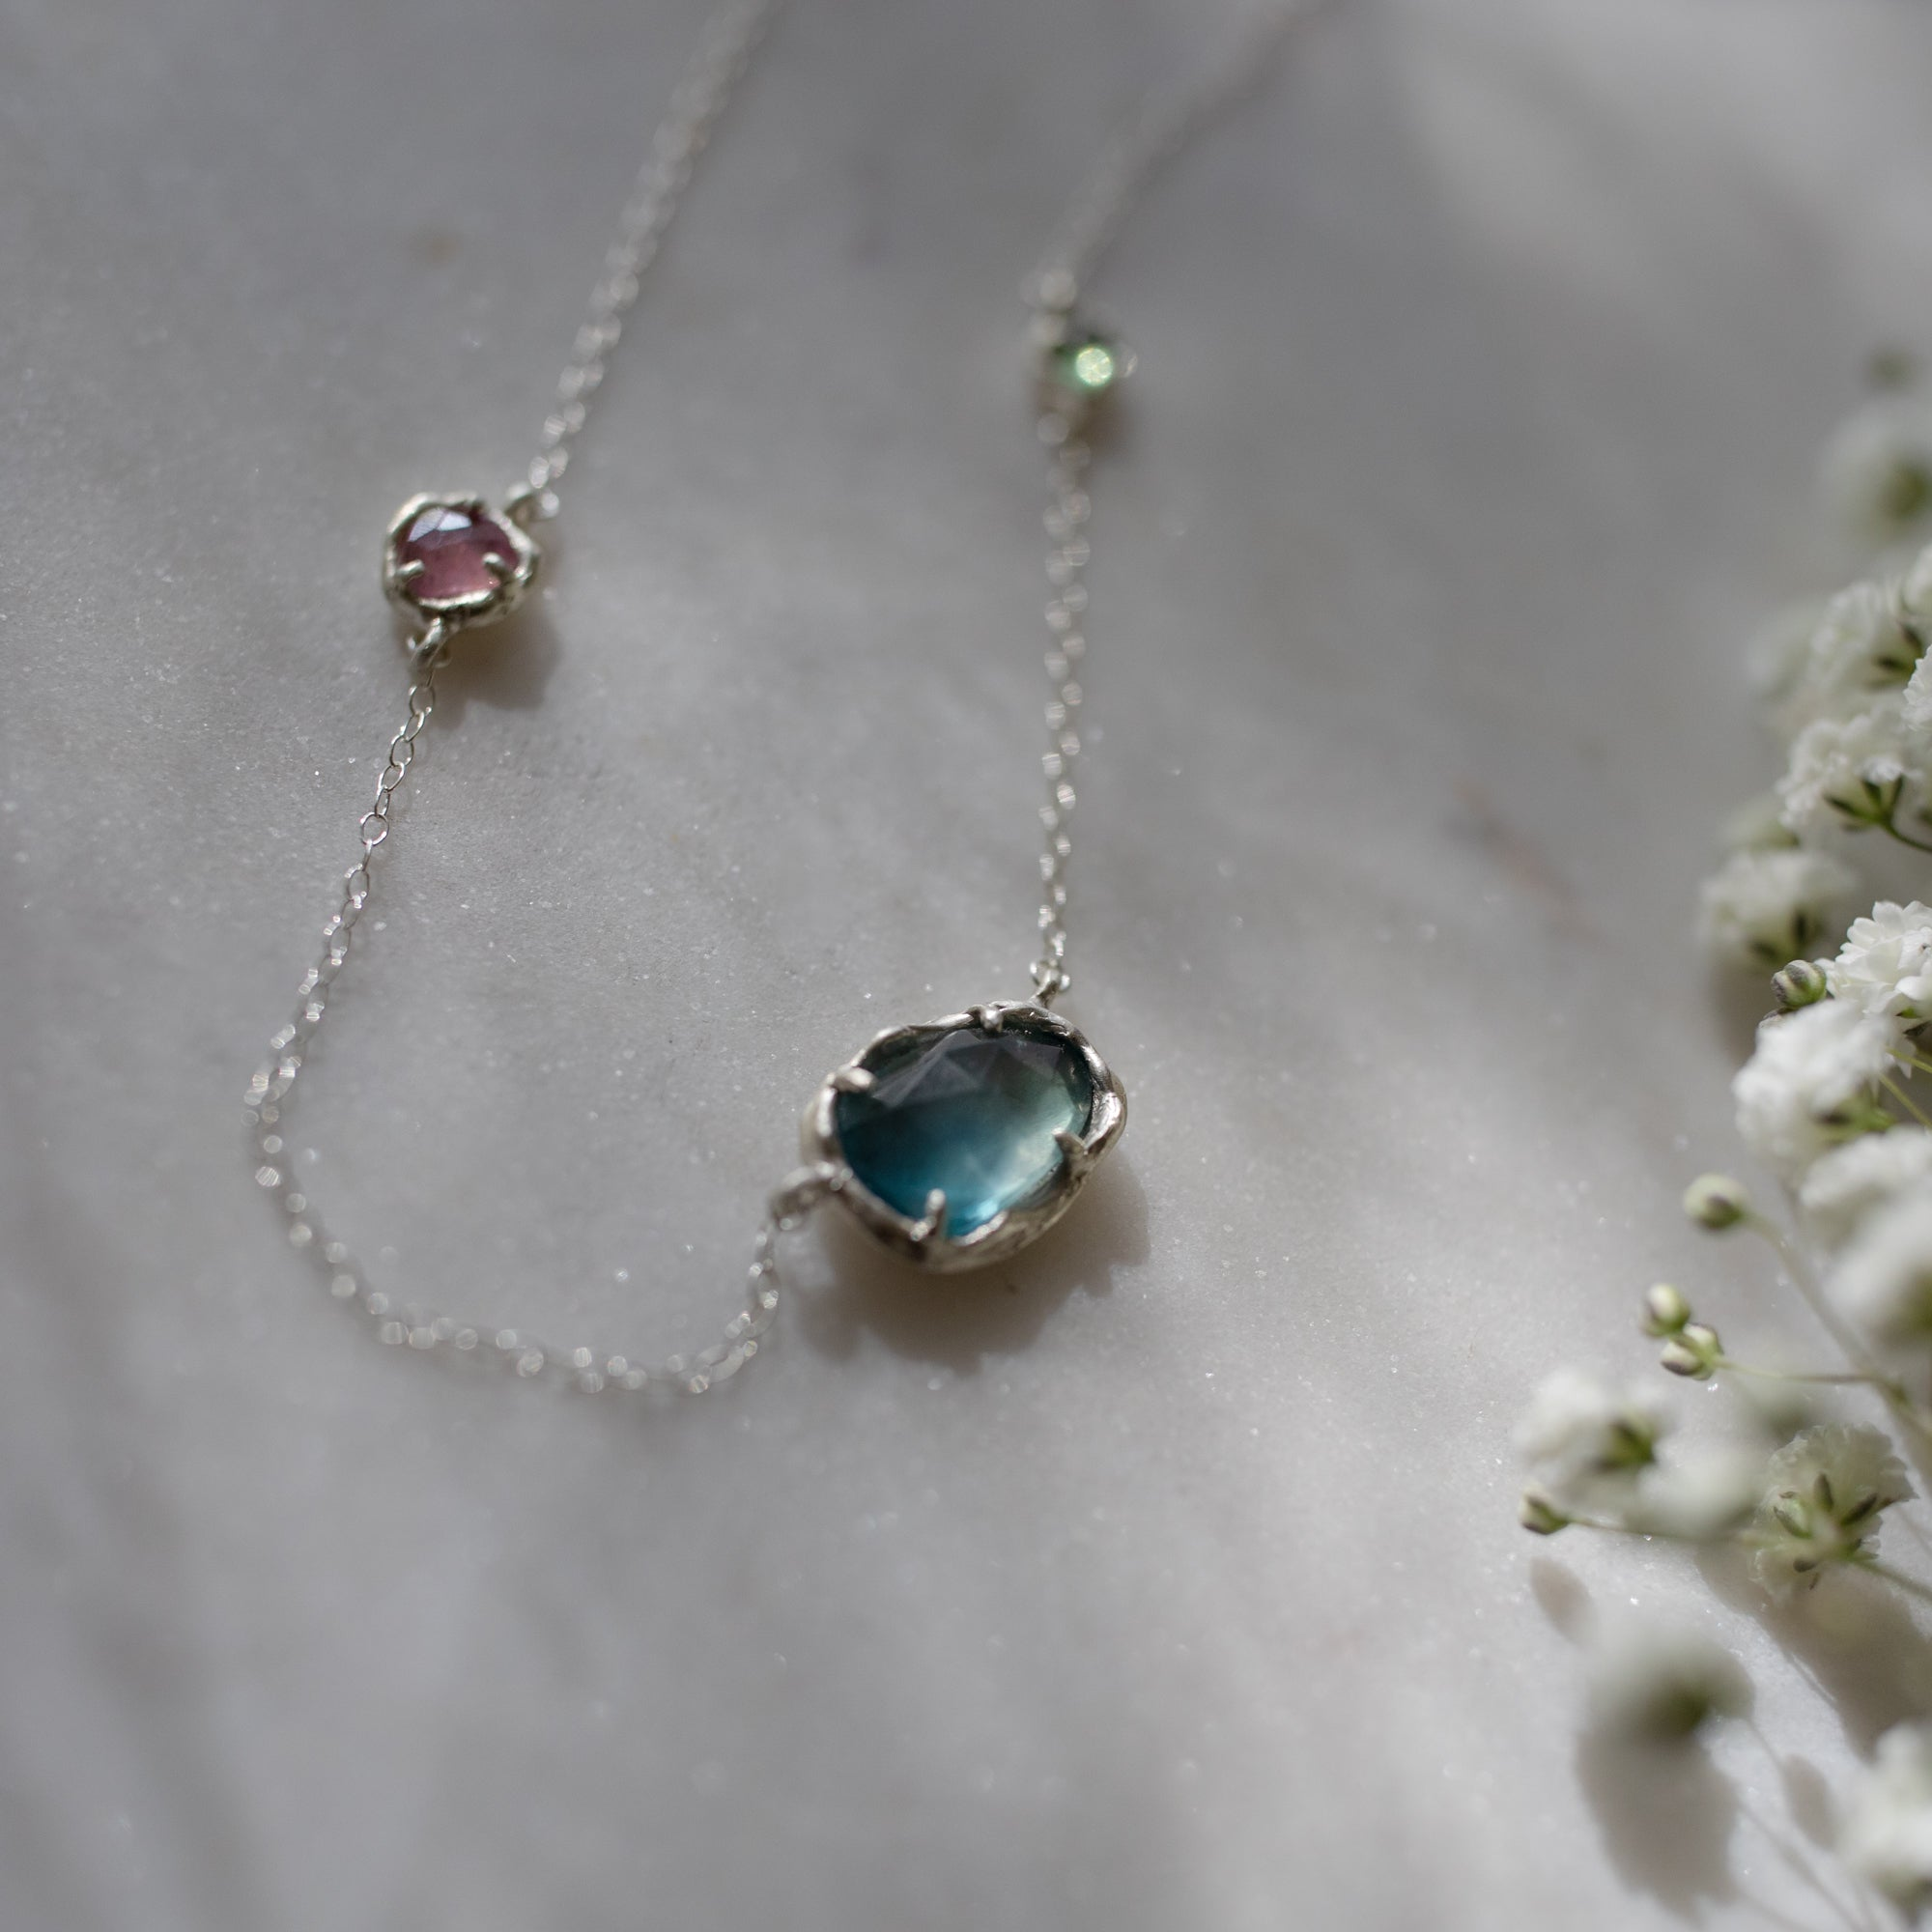 Fluorite, spinel and tourmaline necklace